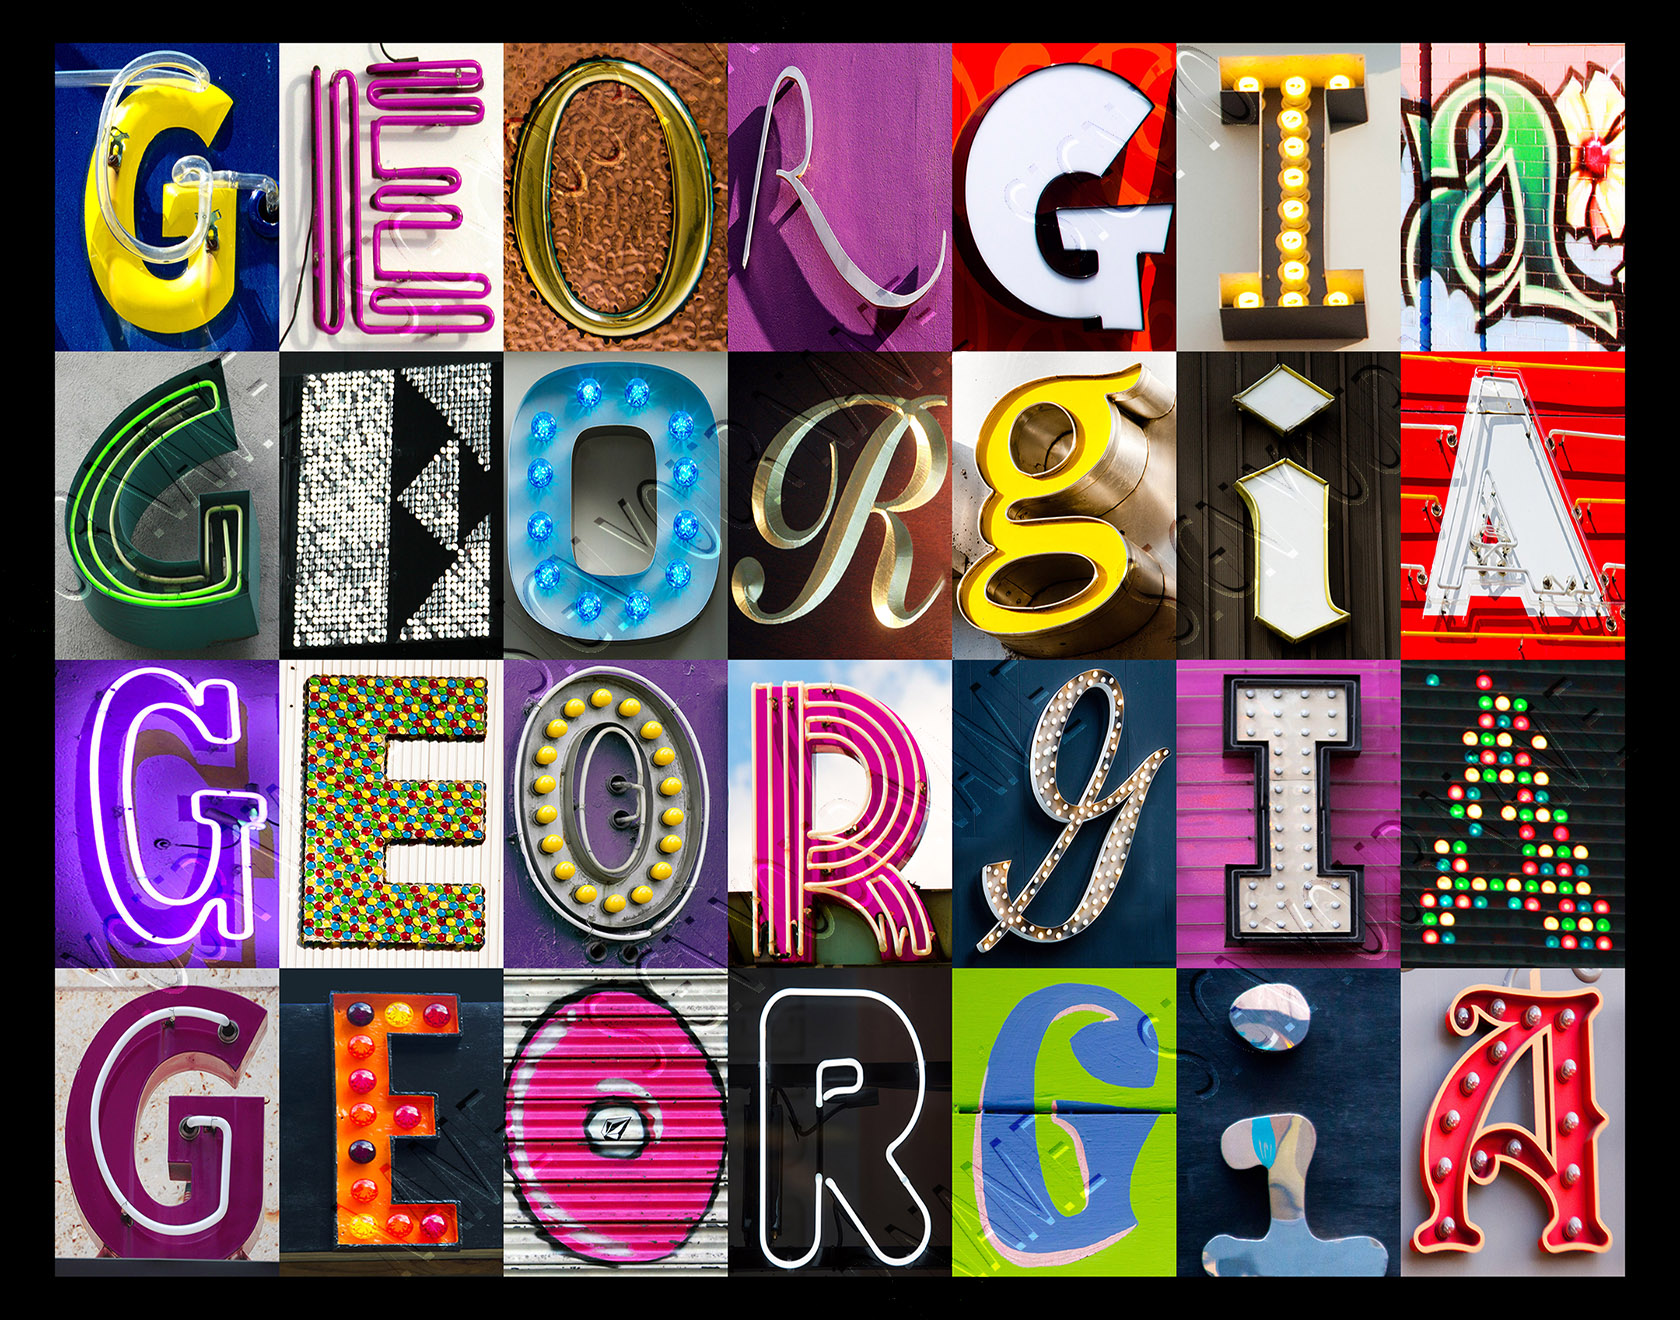 https://www.etsy.com/listing/257821348/personalized-poster-featuring-georgia-in?ref=shop_home_active_1&ga_search_query=georgia